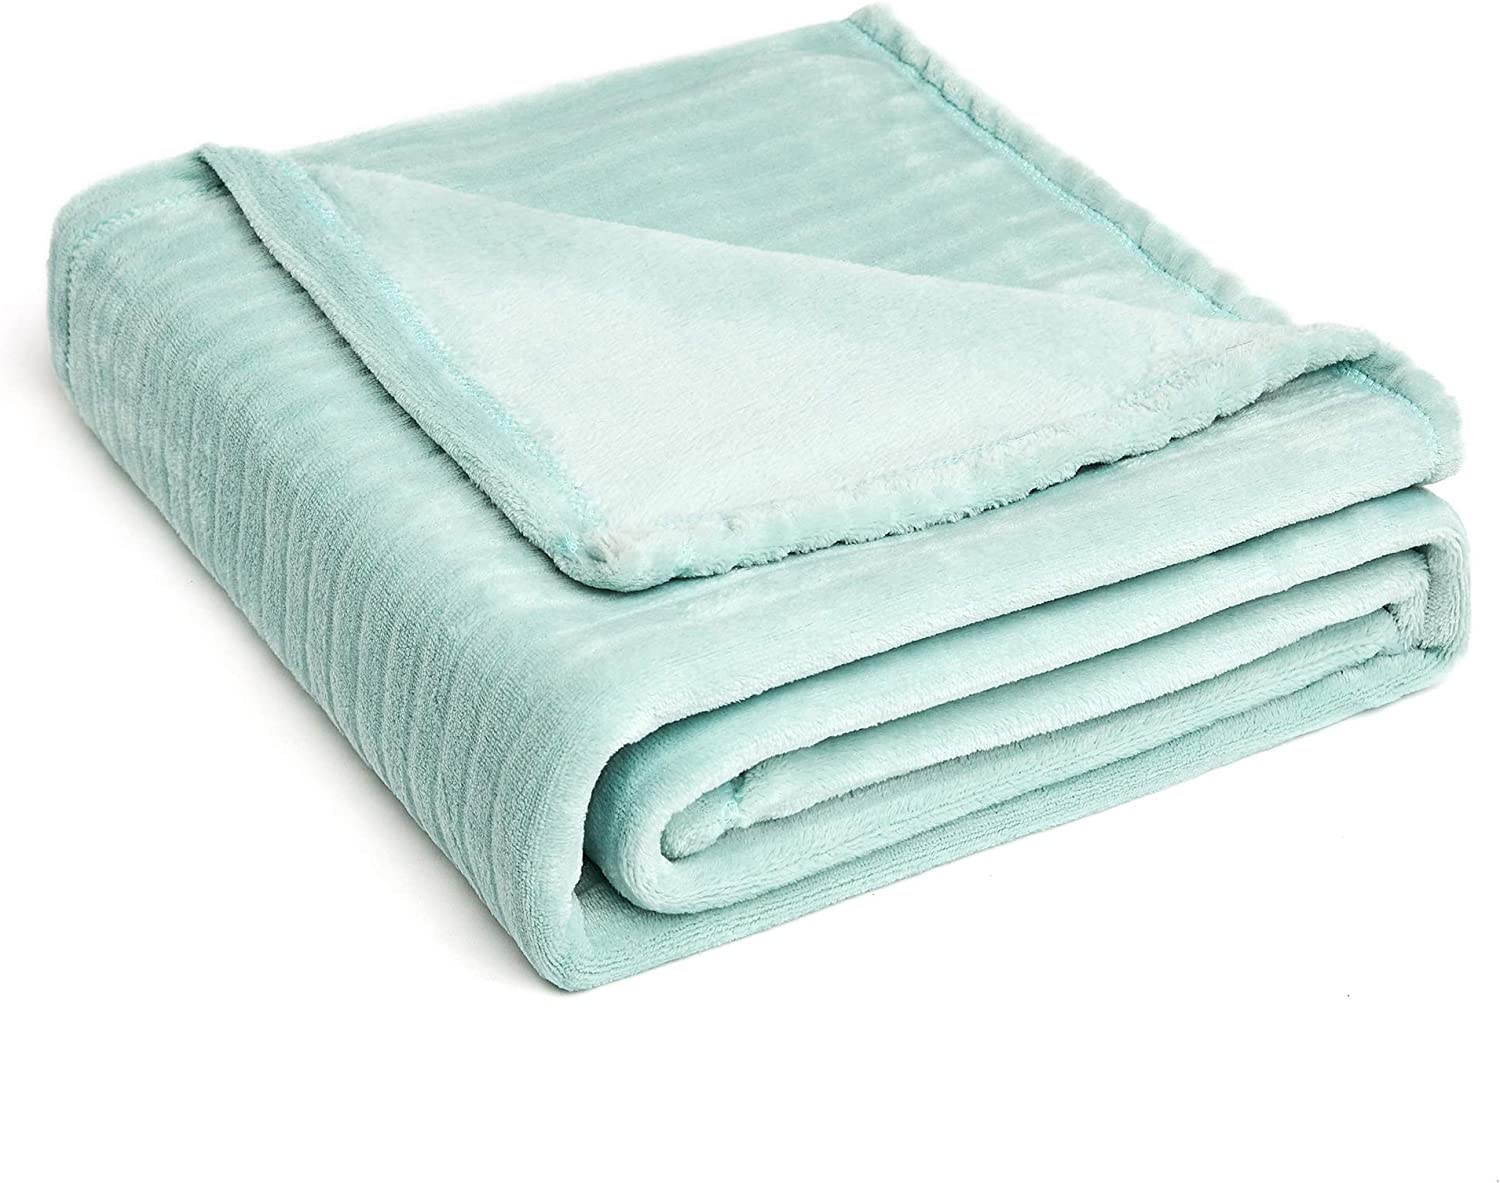 FFLMYUHUL I U Fuzzy Throw Blanket with Super Soft and Warm Throw Flannel Blanket Mint